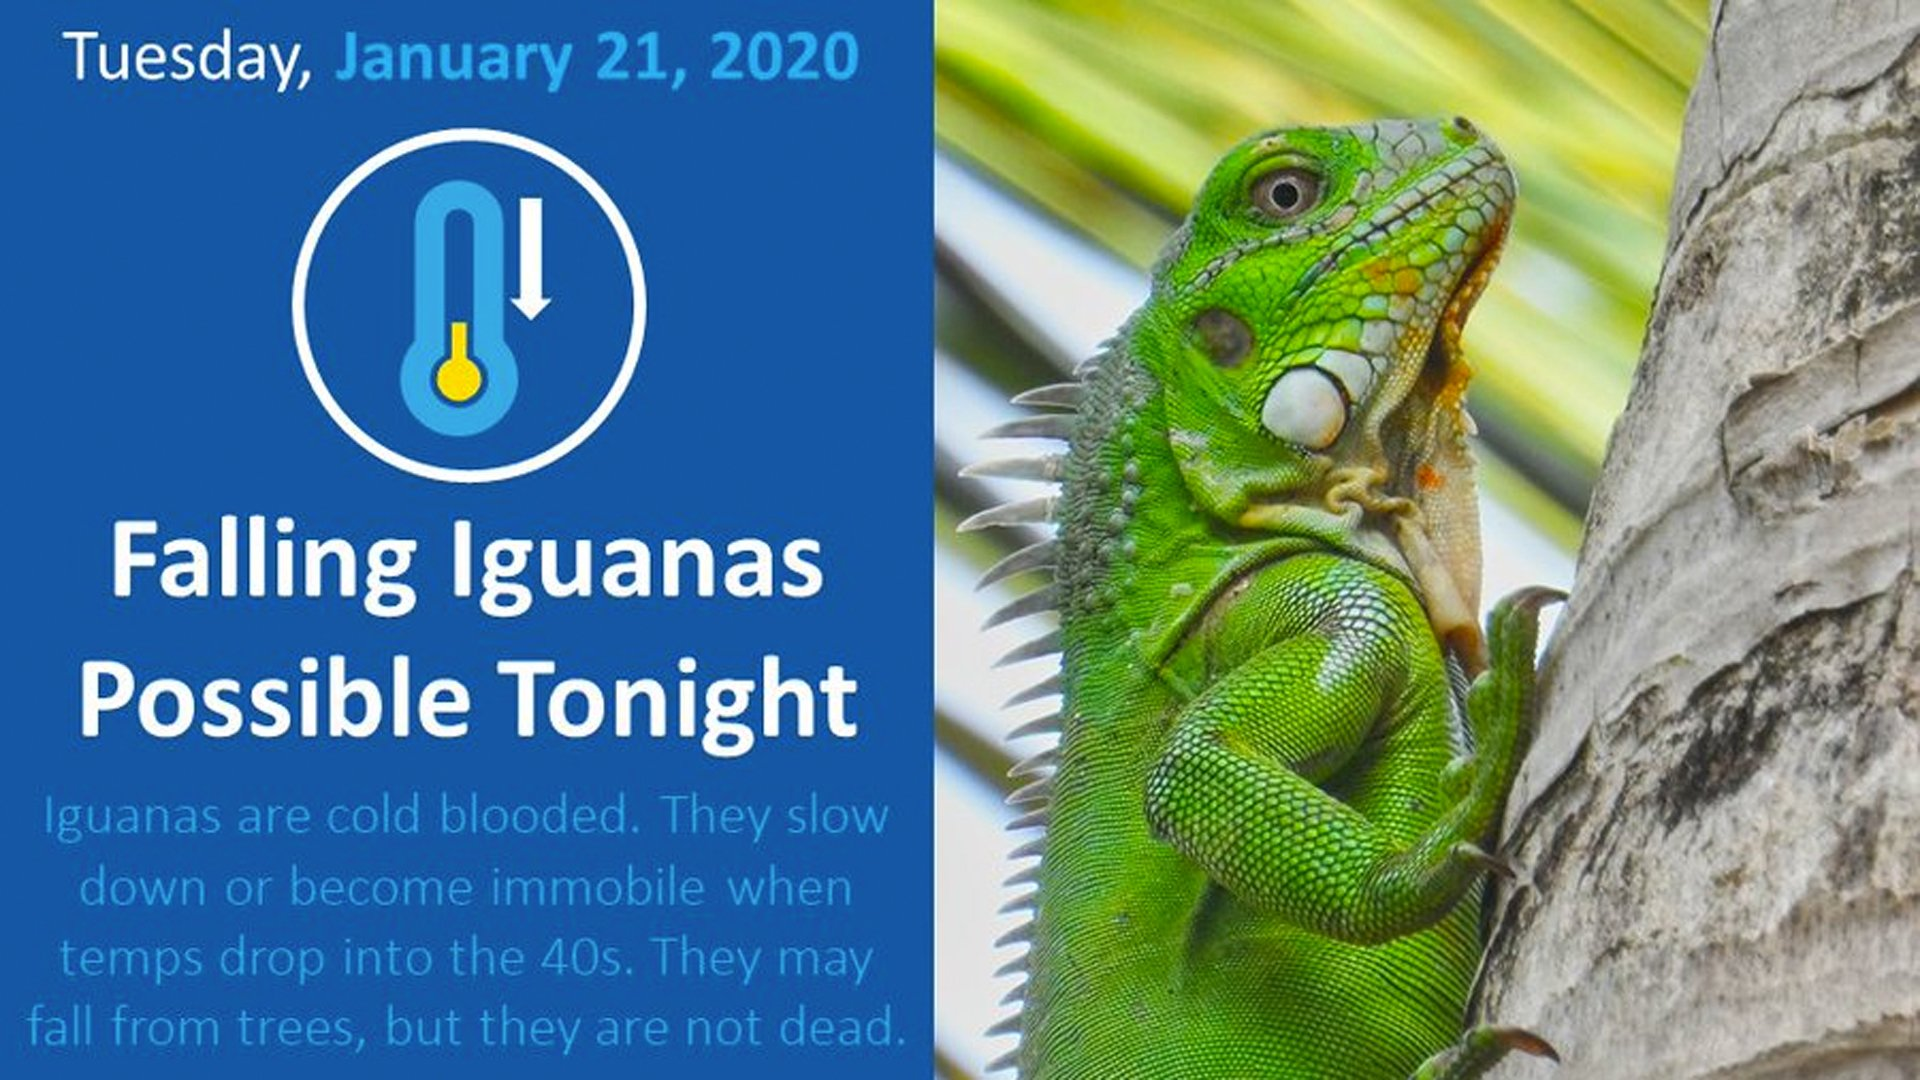 Tuesday afternoon, the National Weather Service in Miami issued a rare forecast regarding cold temperatures but it was for iguanas. (Credit: @NWS Miami/Twitter)